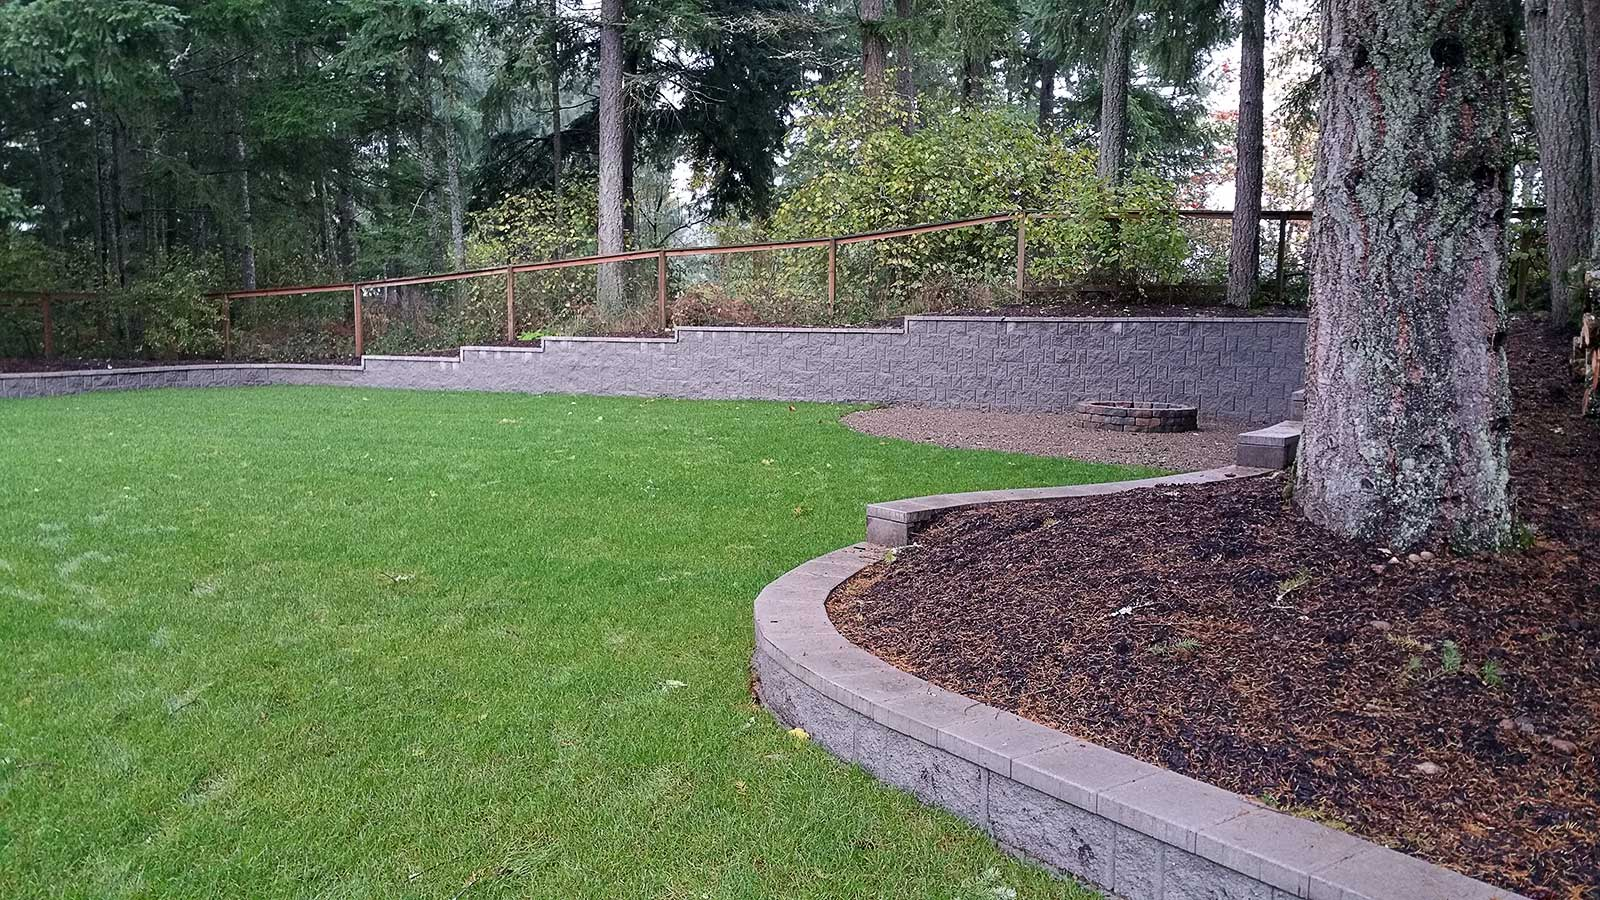 The Vanquathem's backyard now features a new retaining wall, fresh landscaping, a much larger law with new sod and a UG sprinkler system. Point to the image to see how it looked before.